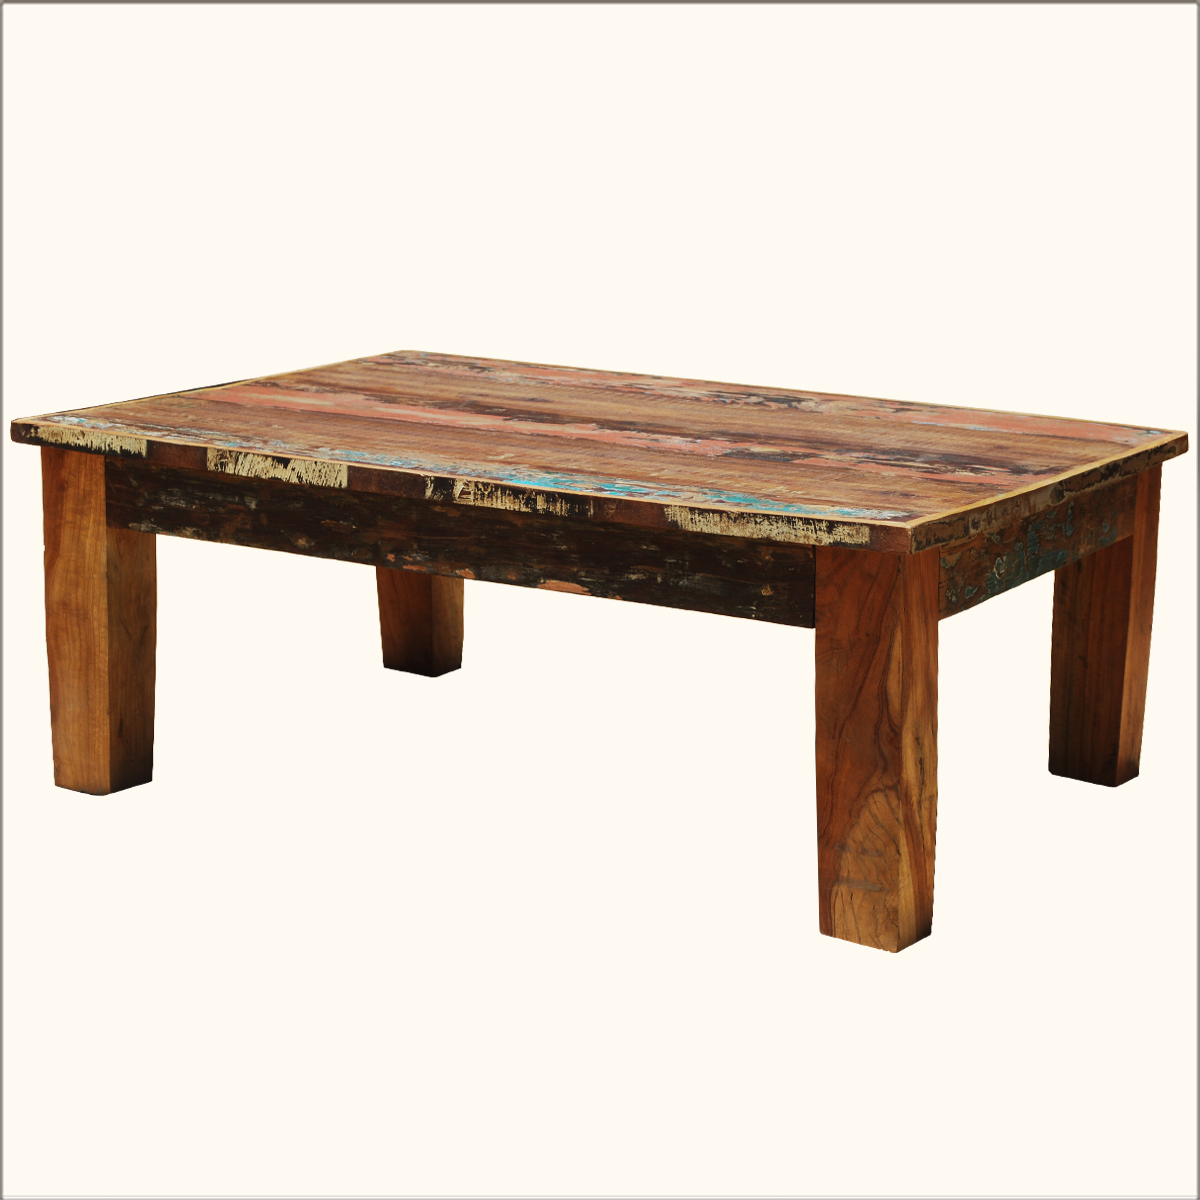 Distressed rustic reclaimed coffee table wood multi color for Coffee table wood